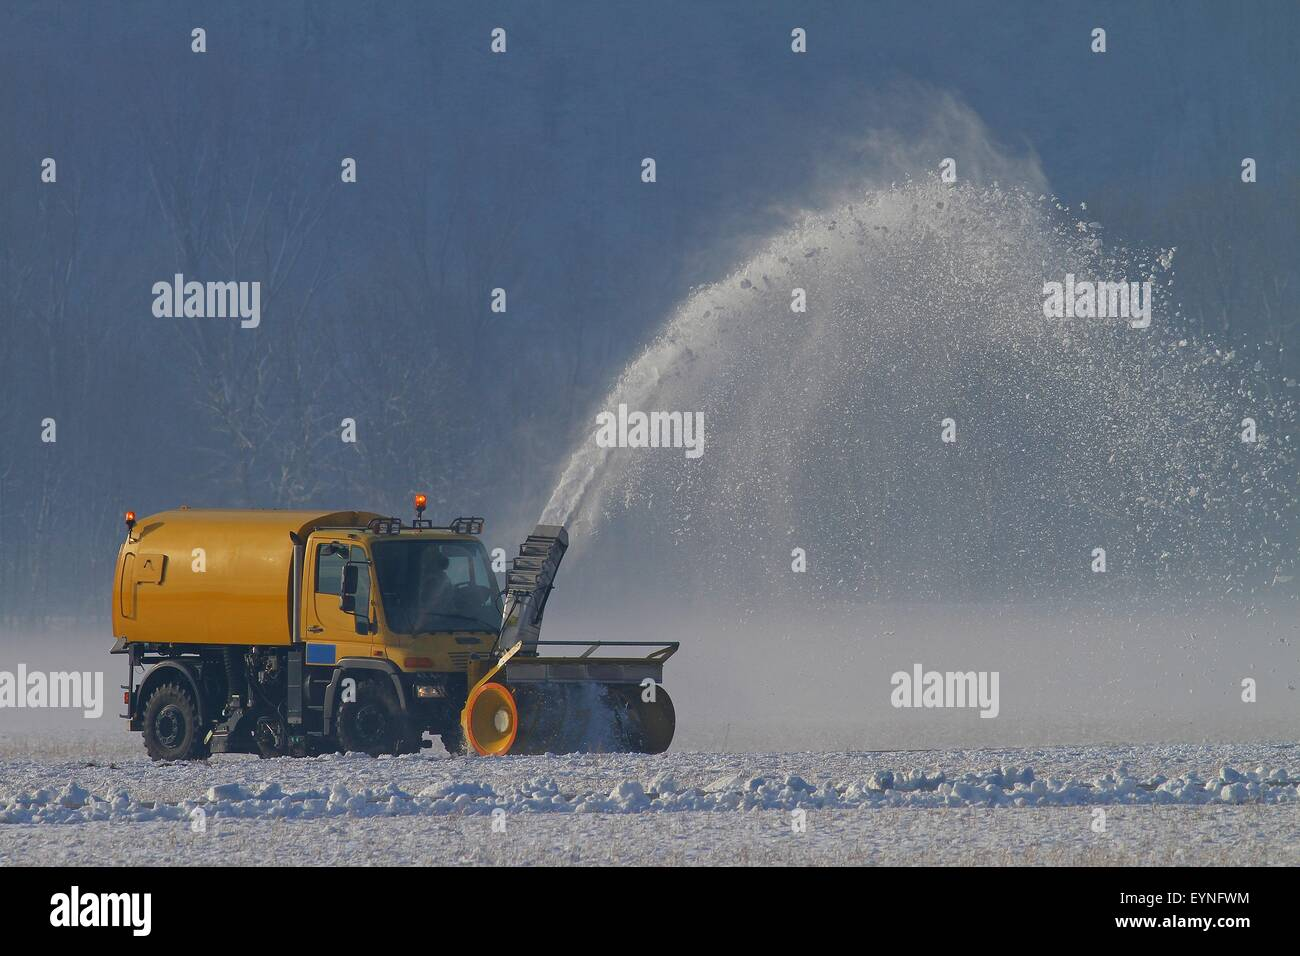 Snowplow removing snow at an airfield in the winter - Stock Image